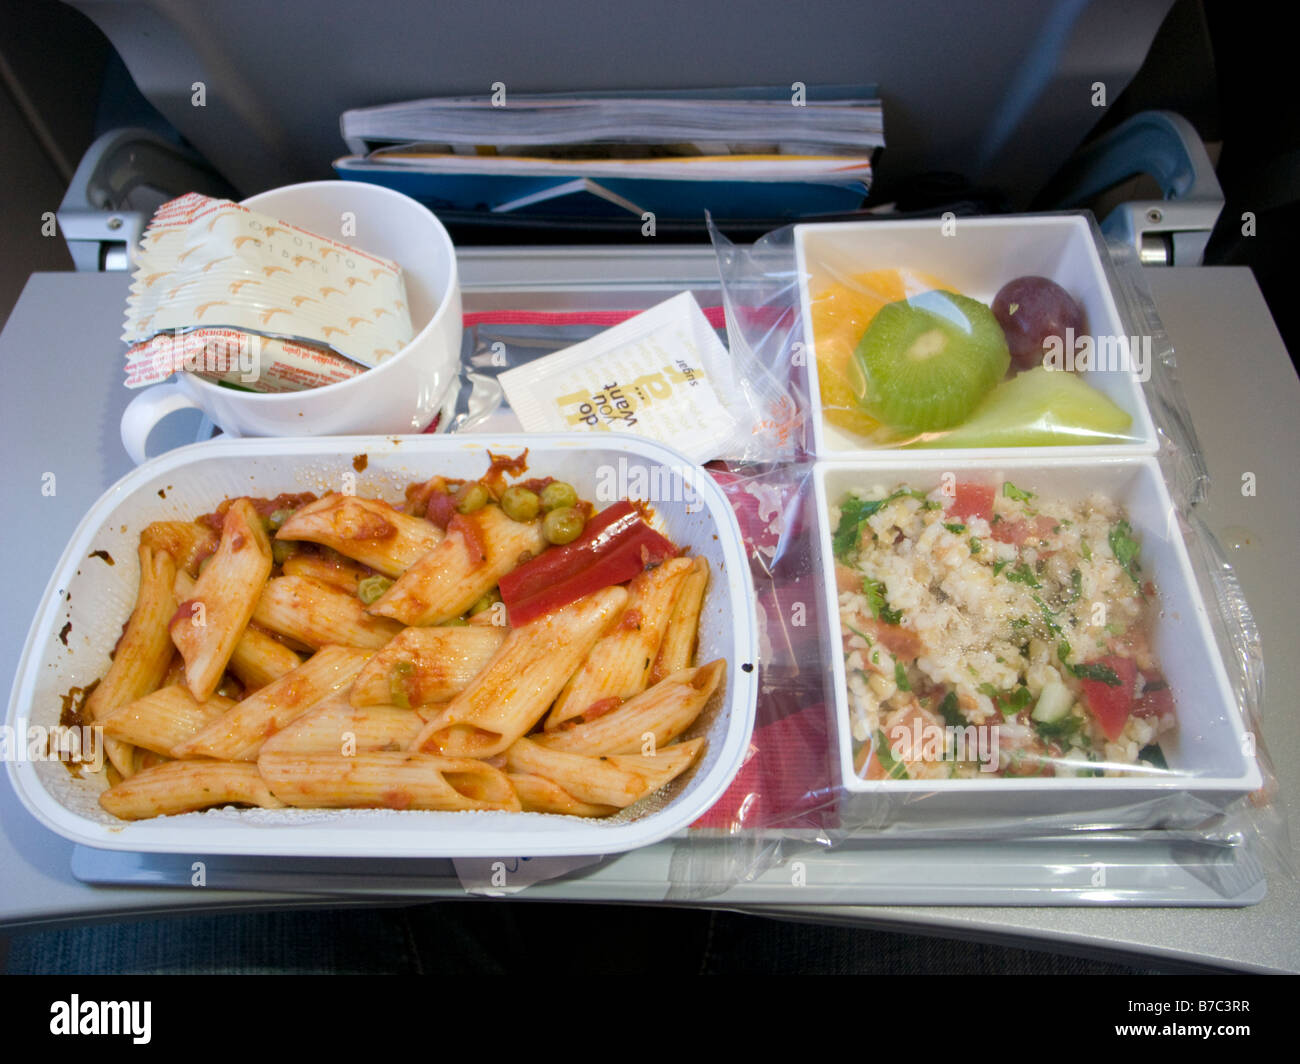 Thomson Inflight Meals >> Airline Meals Stock Photos Airline Meals Stock Images Alamy